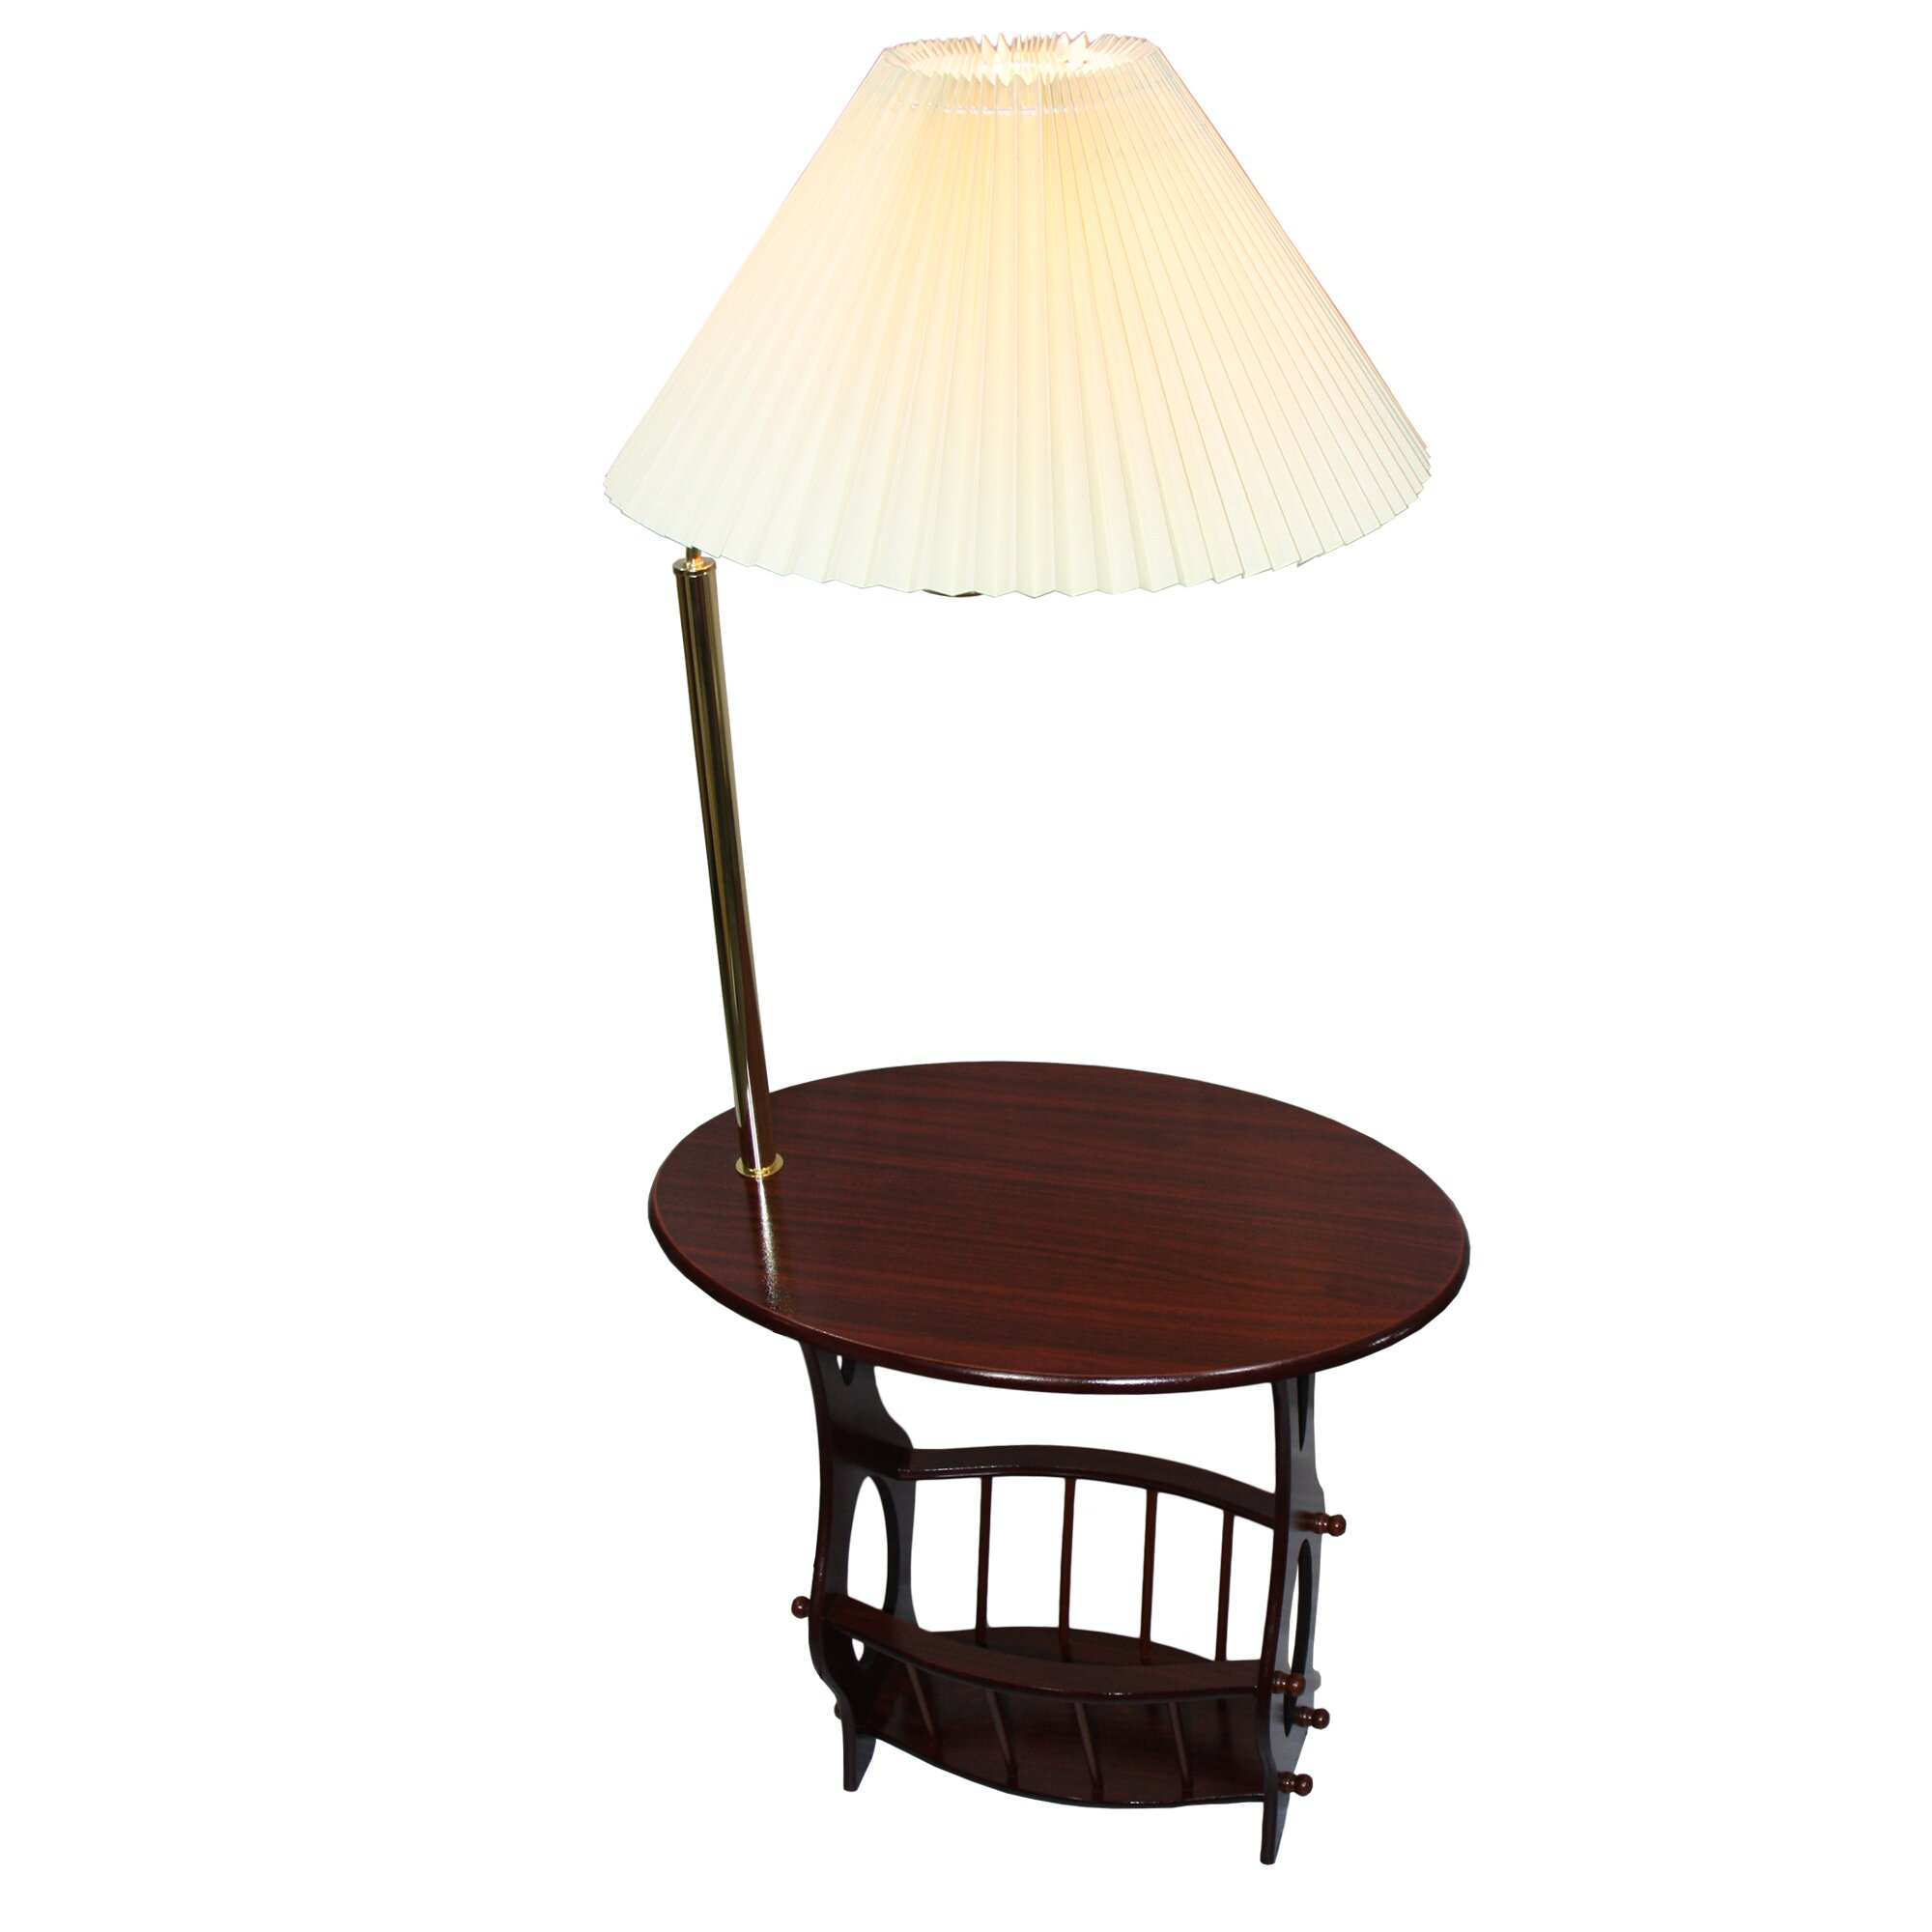 ore furniture floor lamp end table magazine rack combination reviews. Black Bedroom Furniture Sets. Home Design Ideas